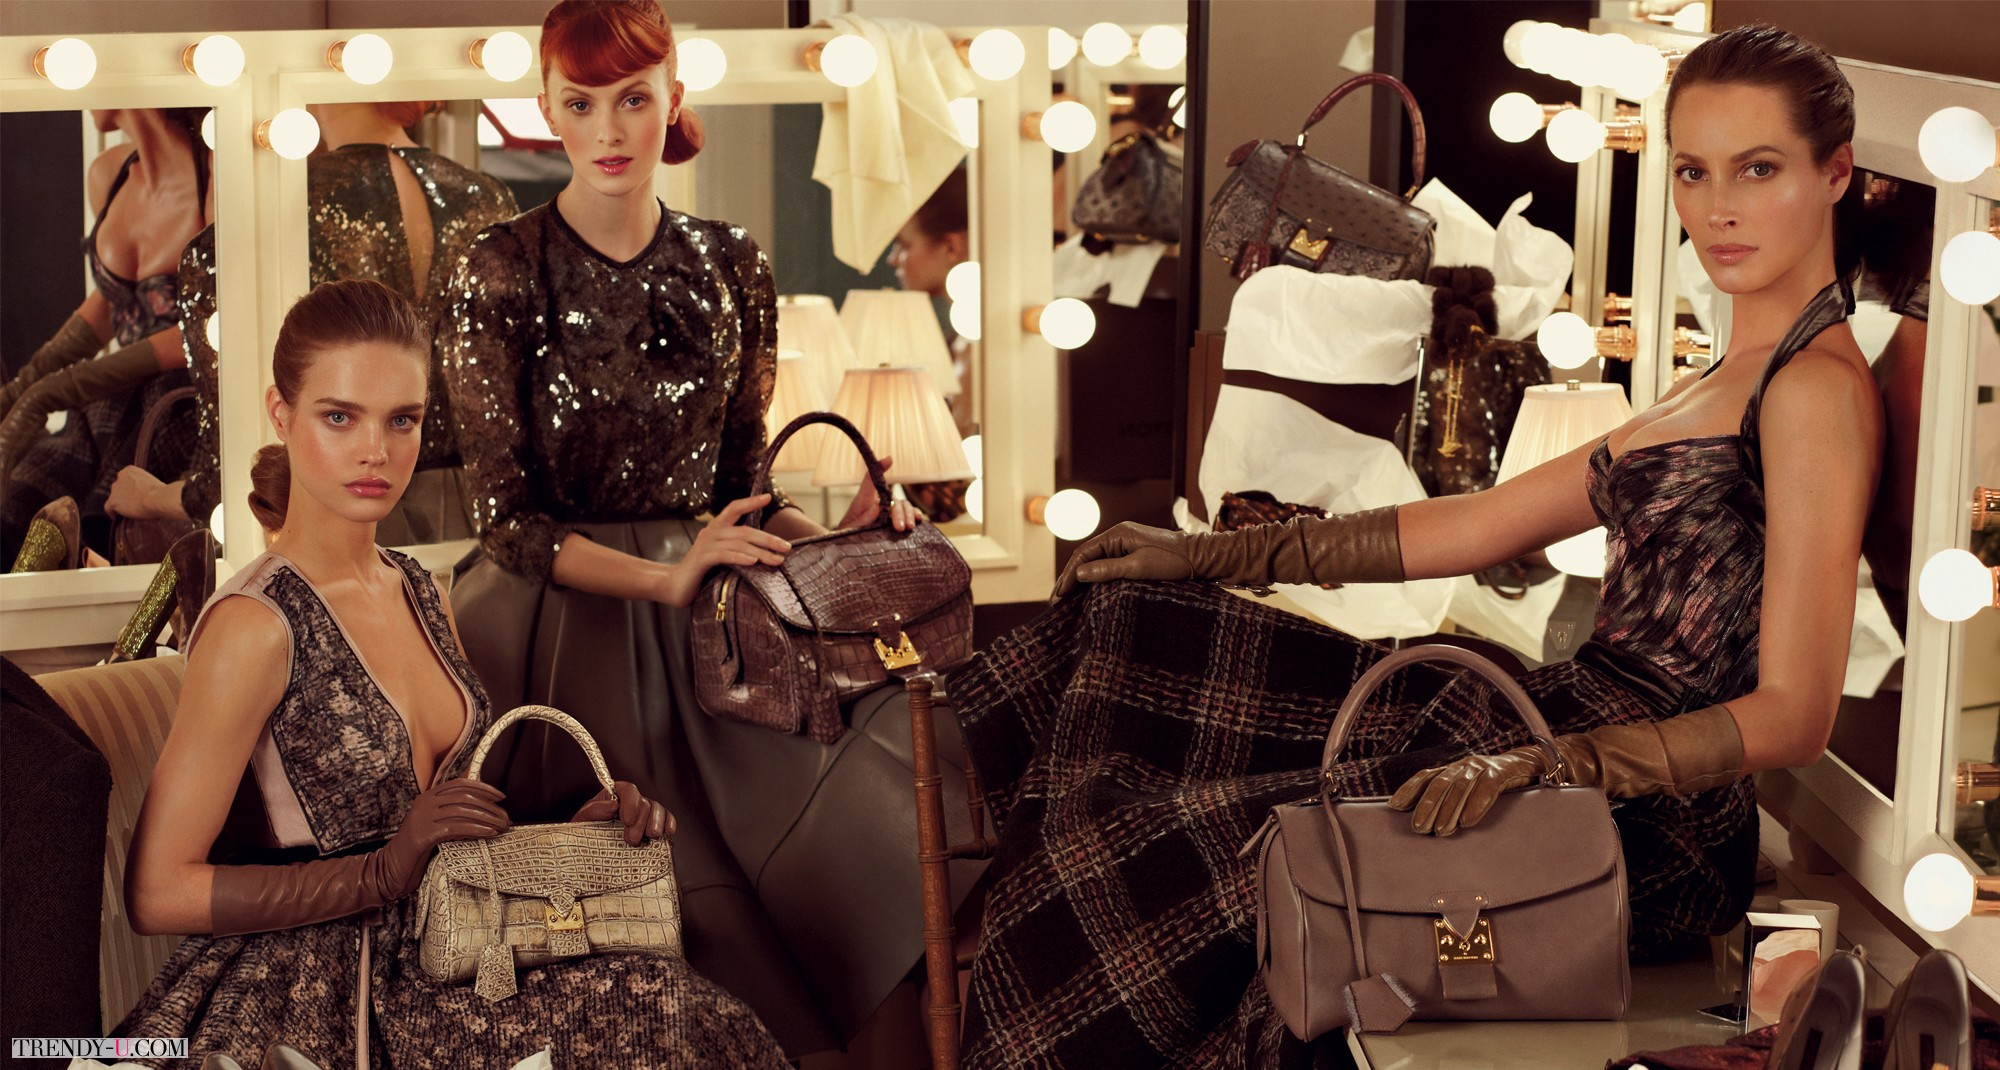 Louis-Vuitton-Fall-Winter-2010-Ad-Campaign